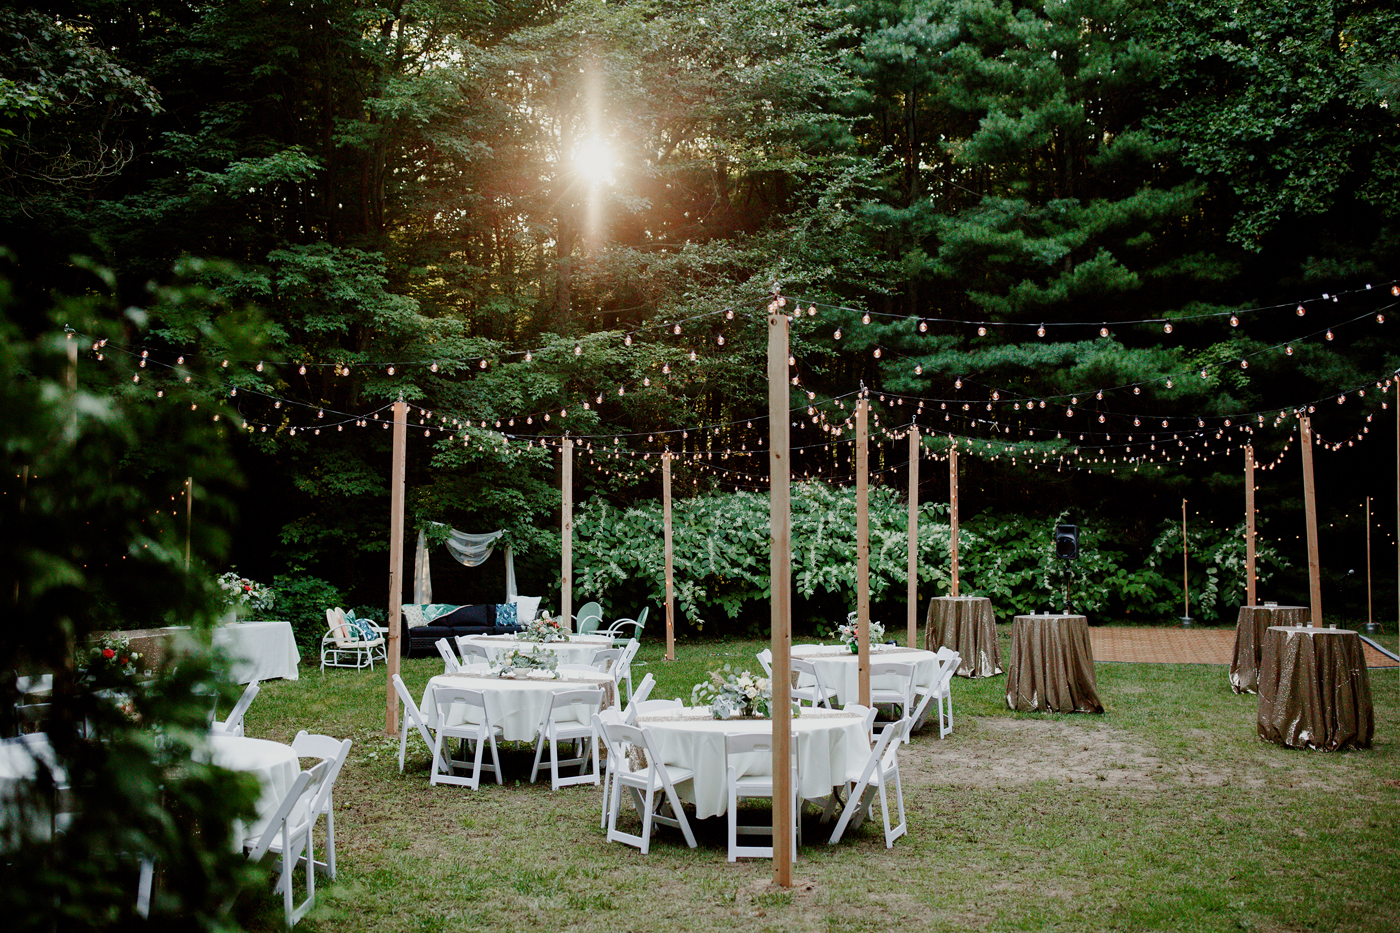 amandavanvels_backyardwedding_0491.jpg